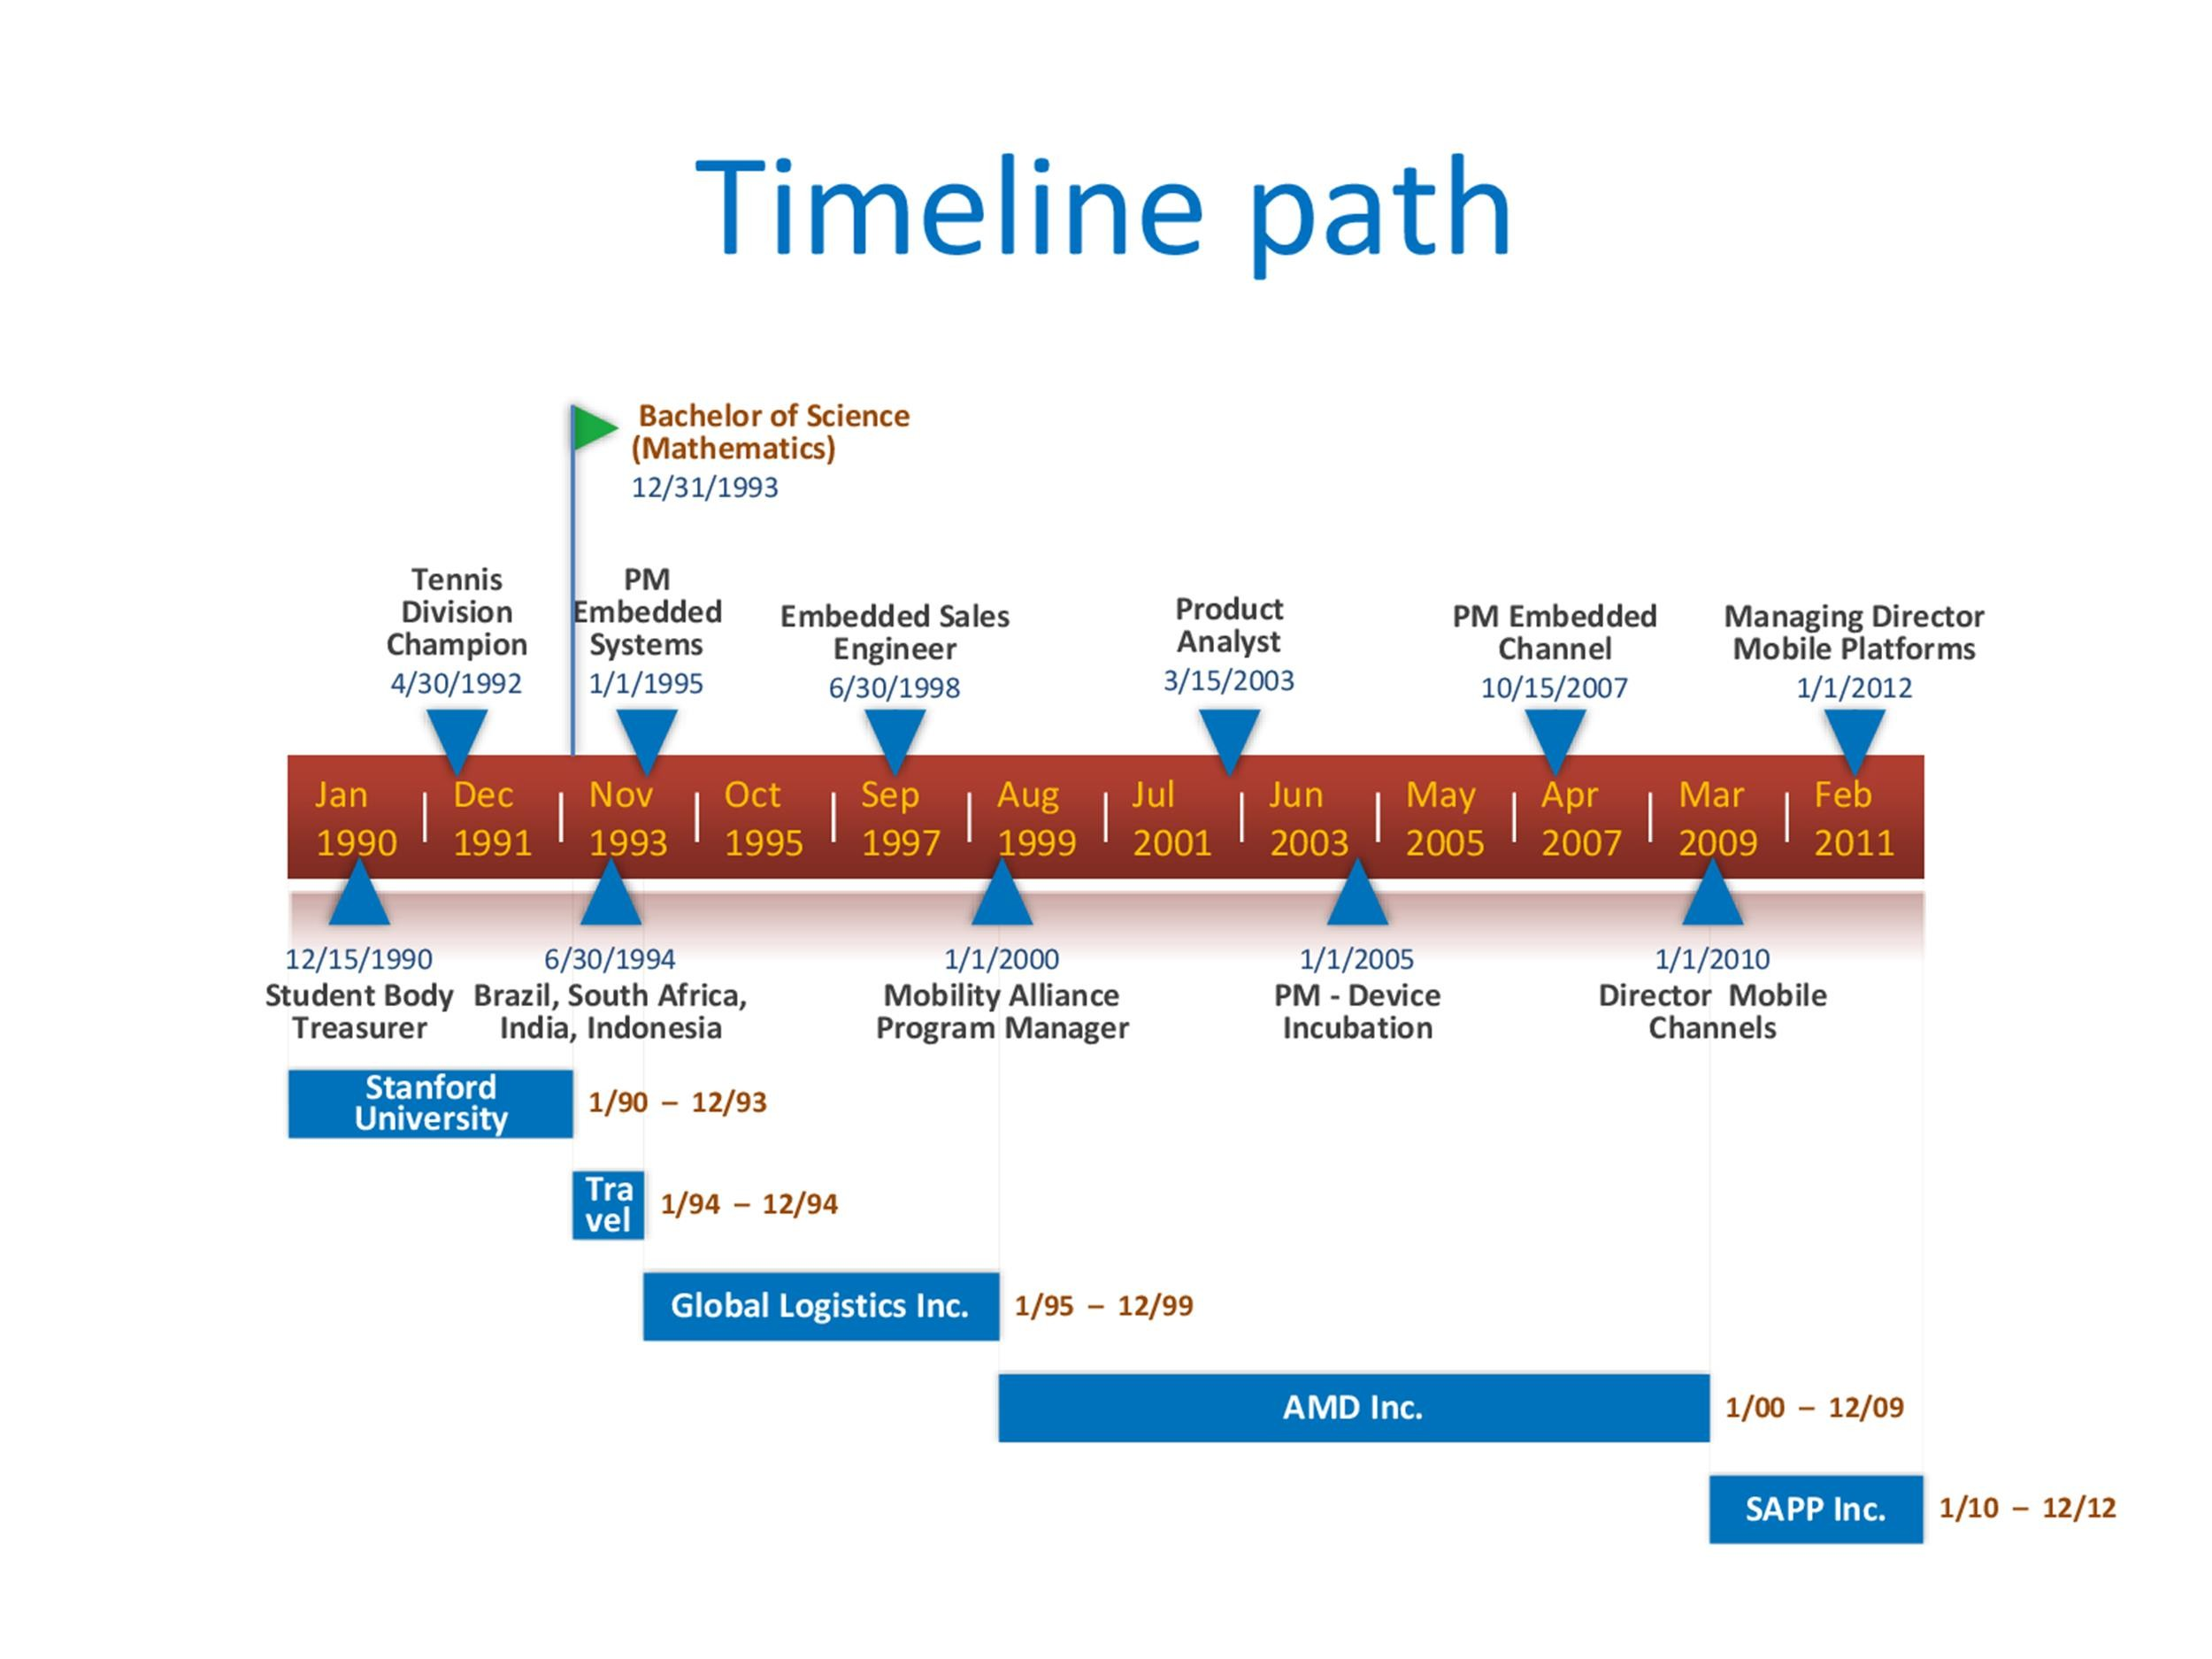 Timeline Sample. 5 Creative Powerpoint Timeline Ideas Stunning